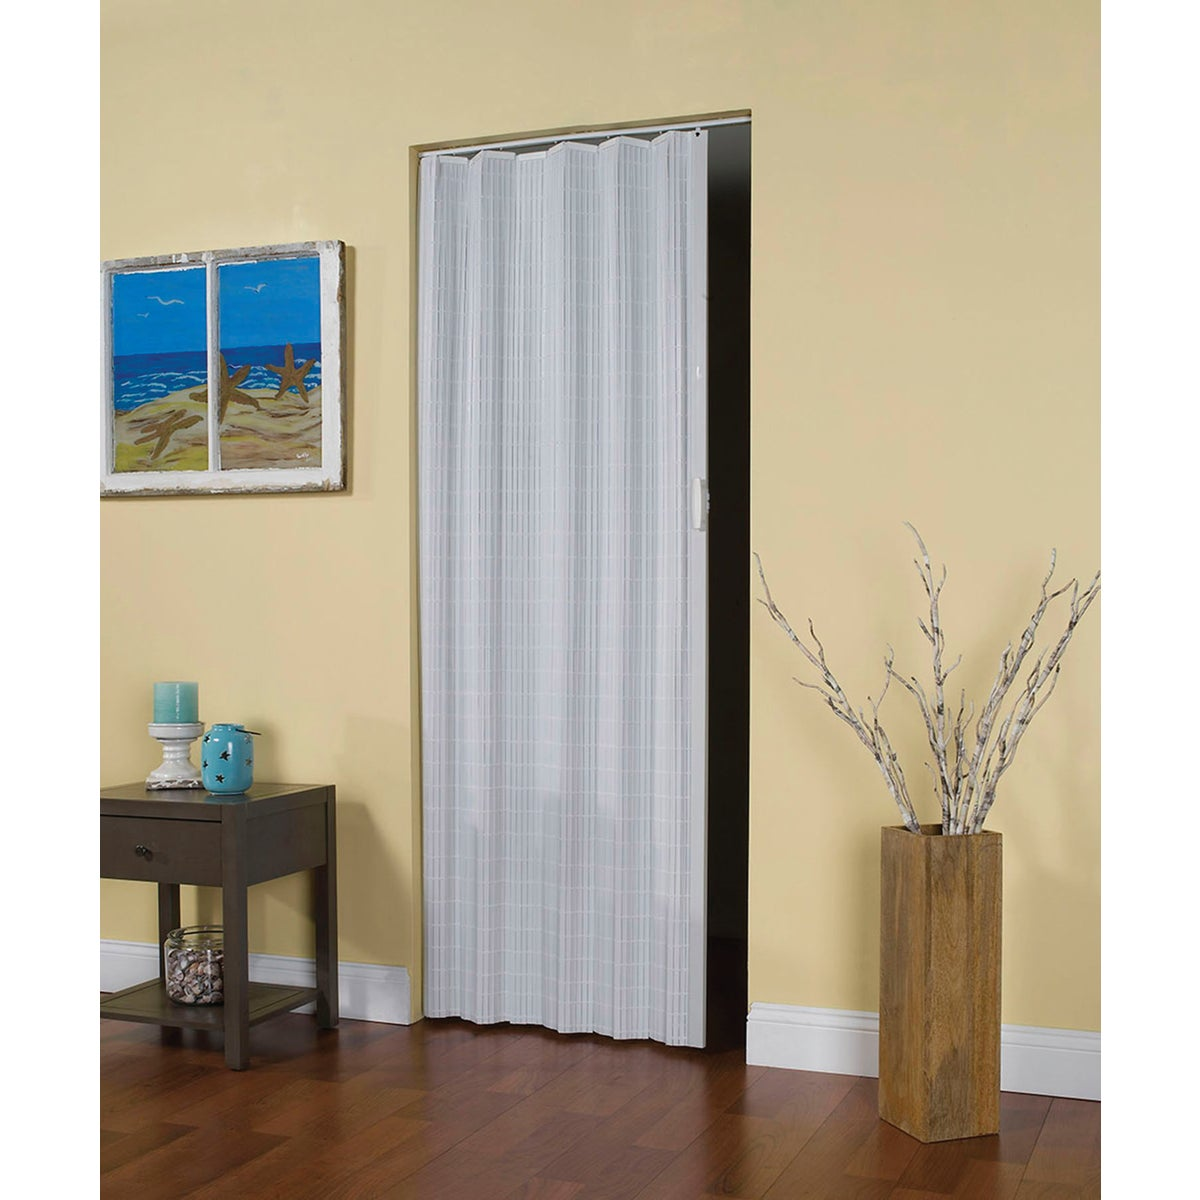 32X80 WHT FOLDING DOOR - HZ3280H by L T L Home Products